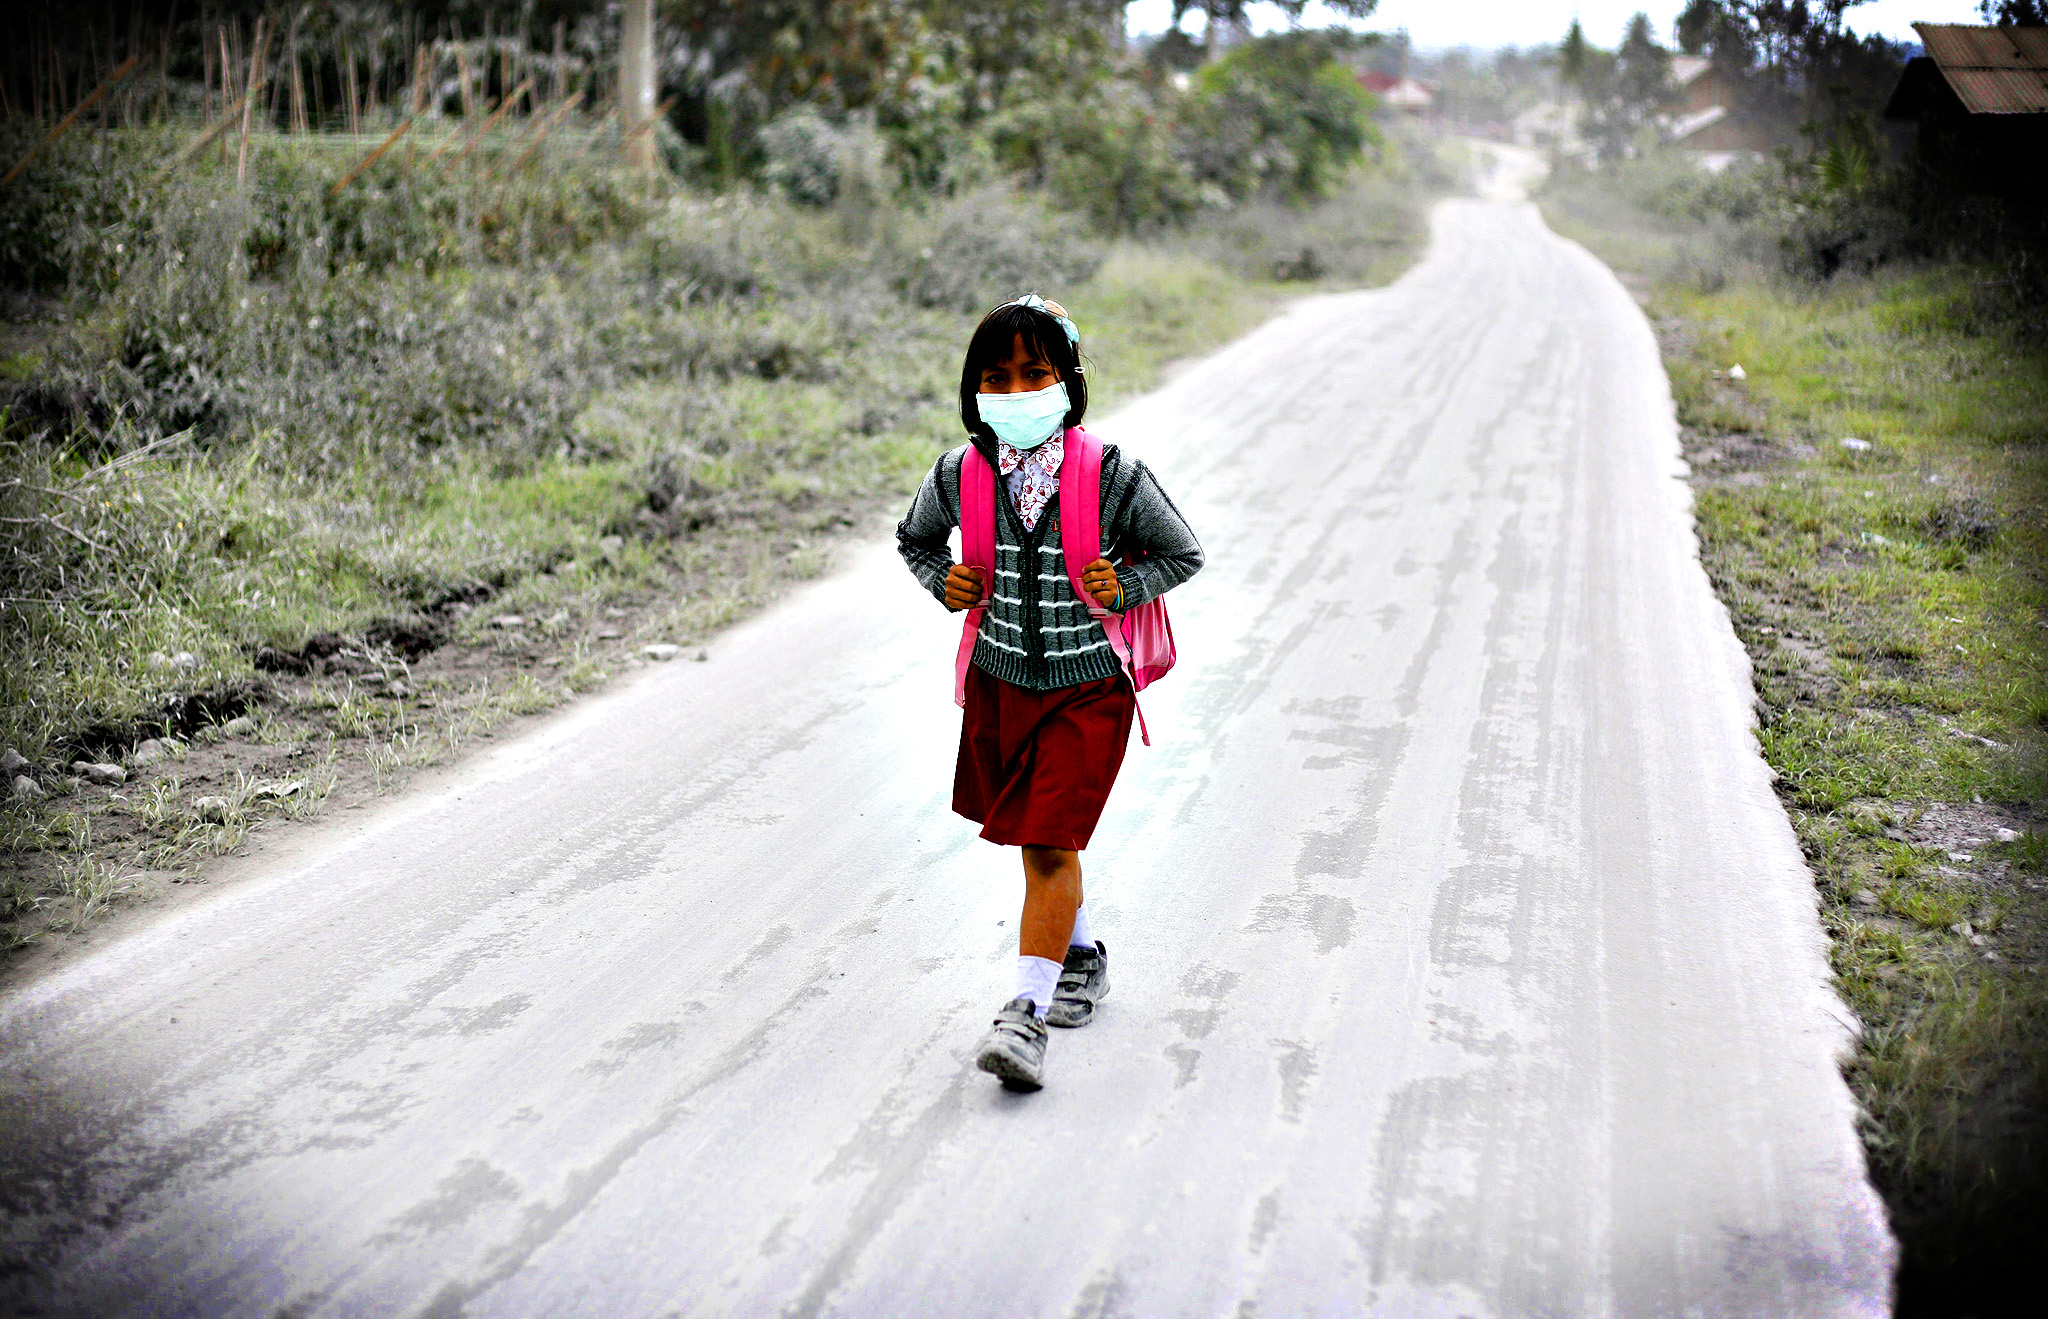 A student walks on a road covered with volcanic ash from the eruption of Mount Sinabung in Tiga Nderket, North Sumatra, Indonesia, Wednesday, Nov. 6, 2013. The 2,600-meter (8,530-foot) -high volcano has been erupting since Sunday, unleashing volcanic ash high into the sky and forcing the evacuation of villagers living around its slope.